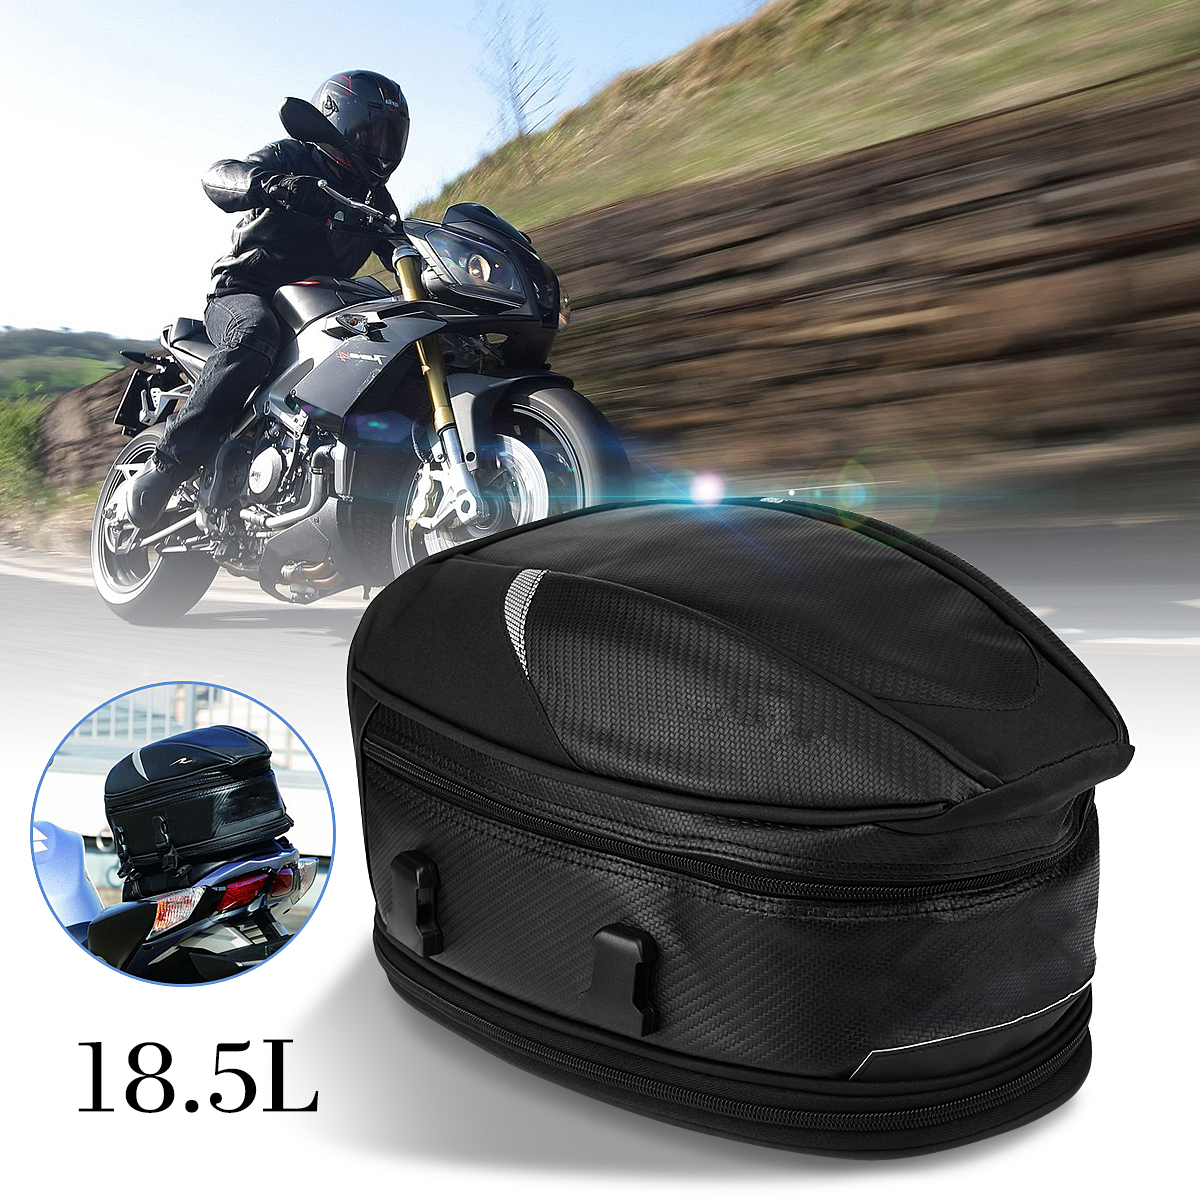 купить Autoleader Waterproof Motorcycle Bag Rear Sport Back Seat Bag Motorbike Tail Tool Bags Scooter Helmet Pack по цене 2258.88 рублей